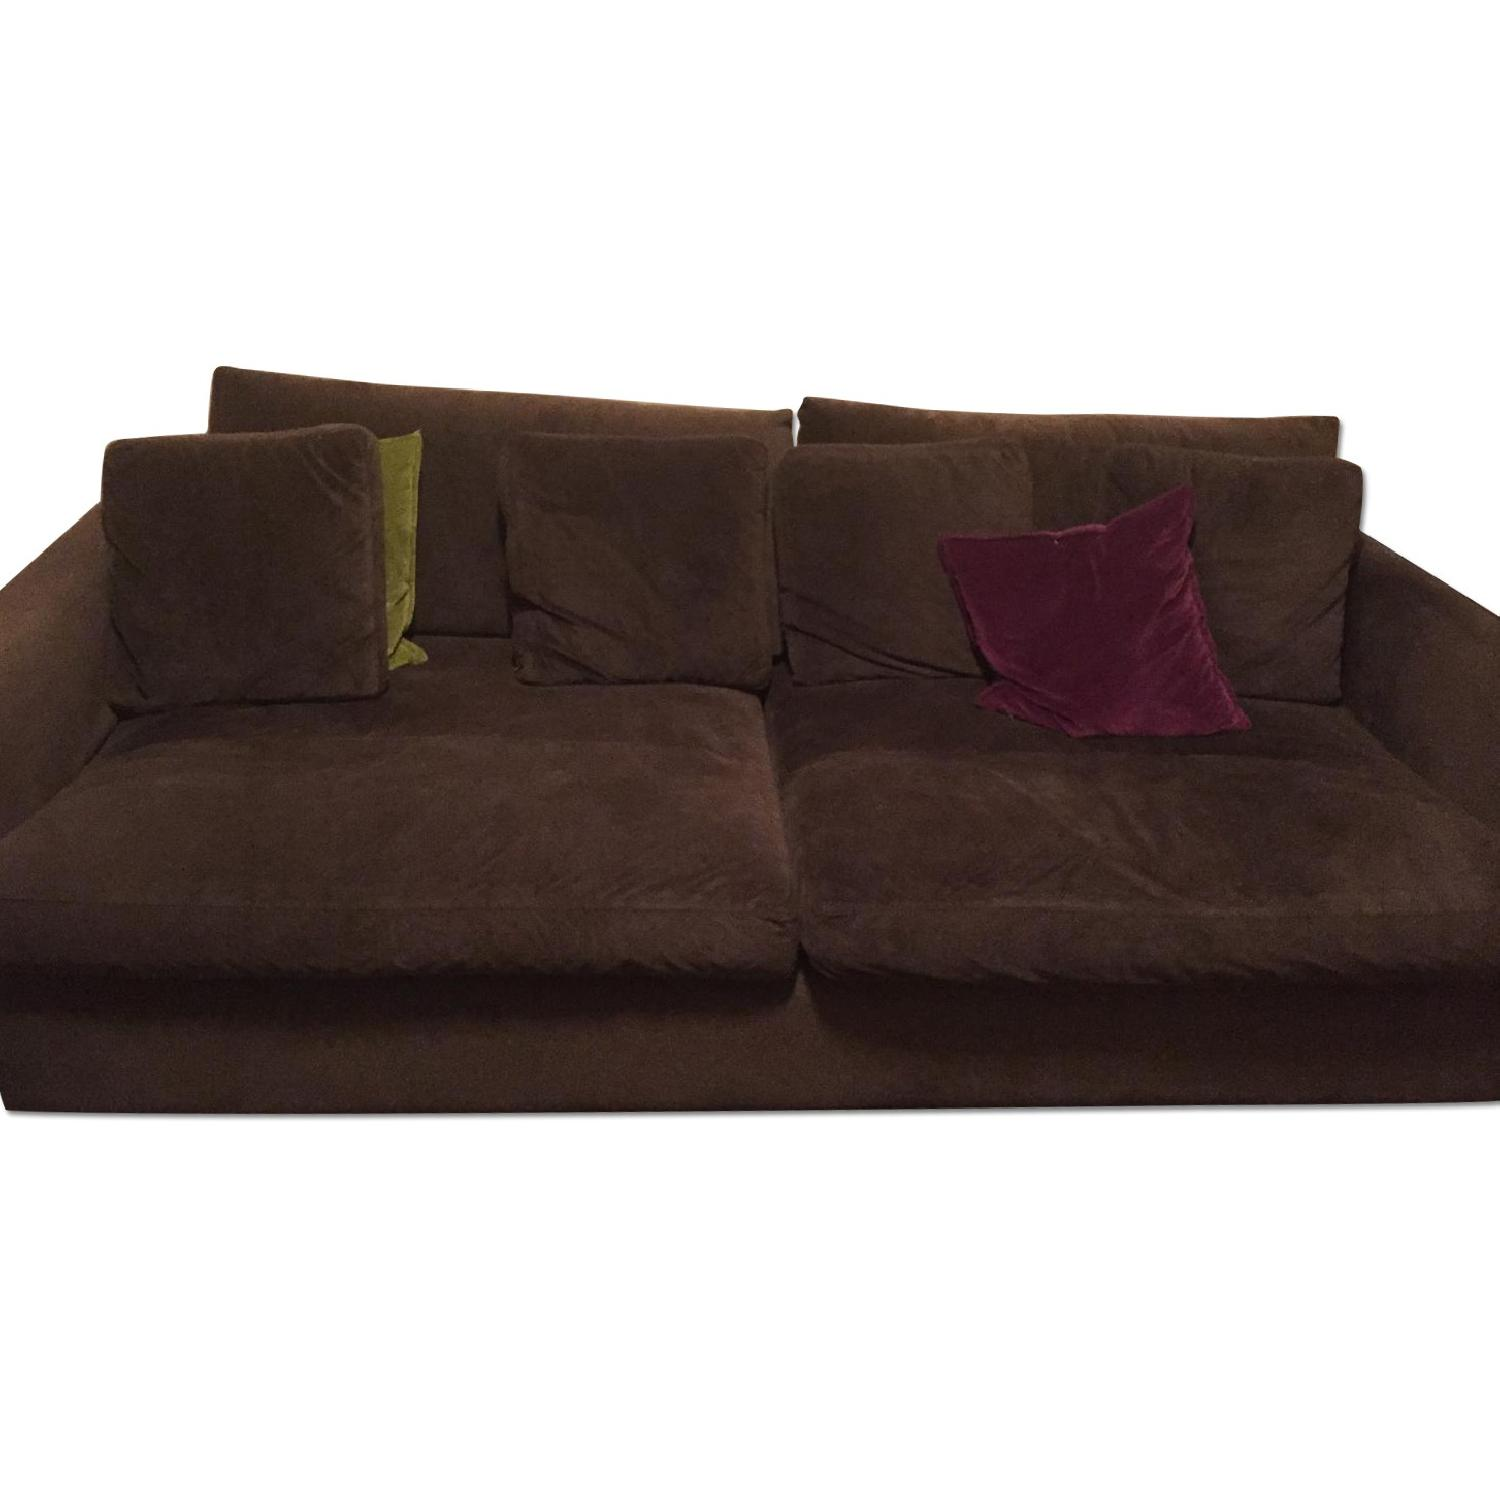 crate & barrel lounge sofa + loveseat + chaise lounge - aptdeco